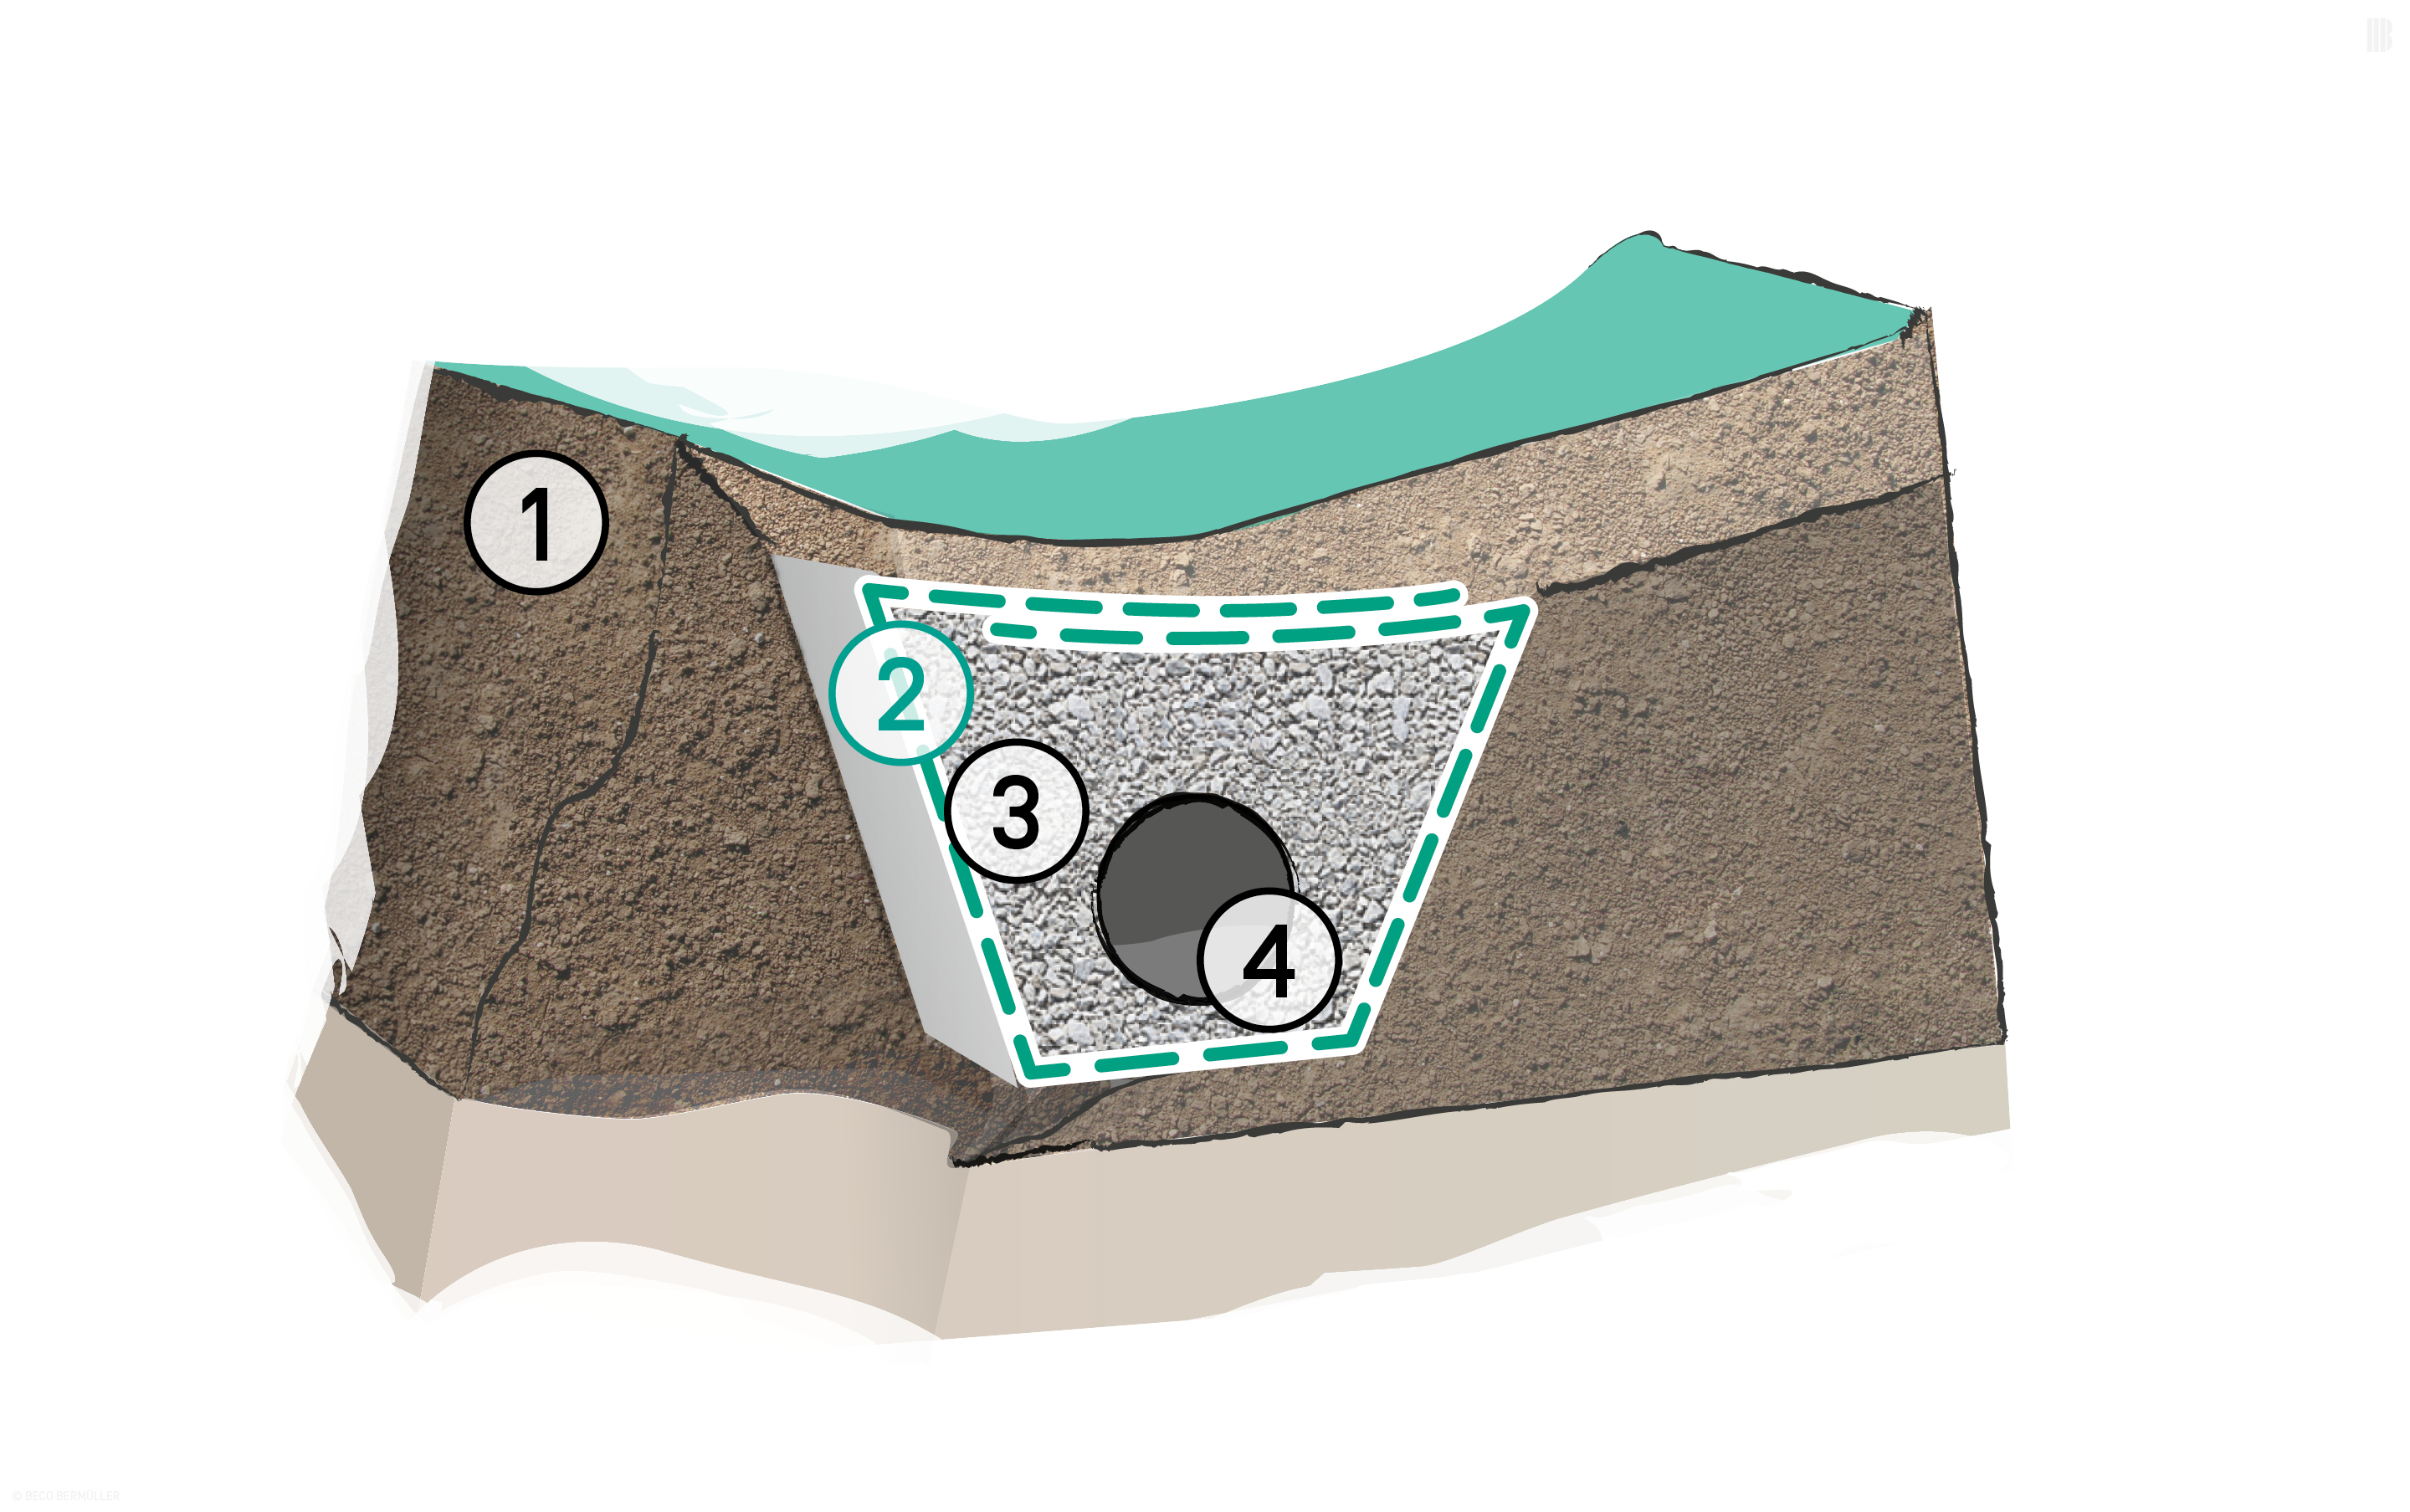 Trench backfill: 1. In-situ soil | 2. BONTEC NW Non-woven Fabric | 3. Free-draining fill material | 4. Partially perforated pipe